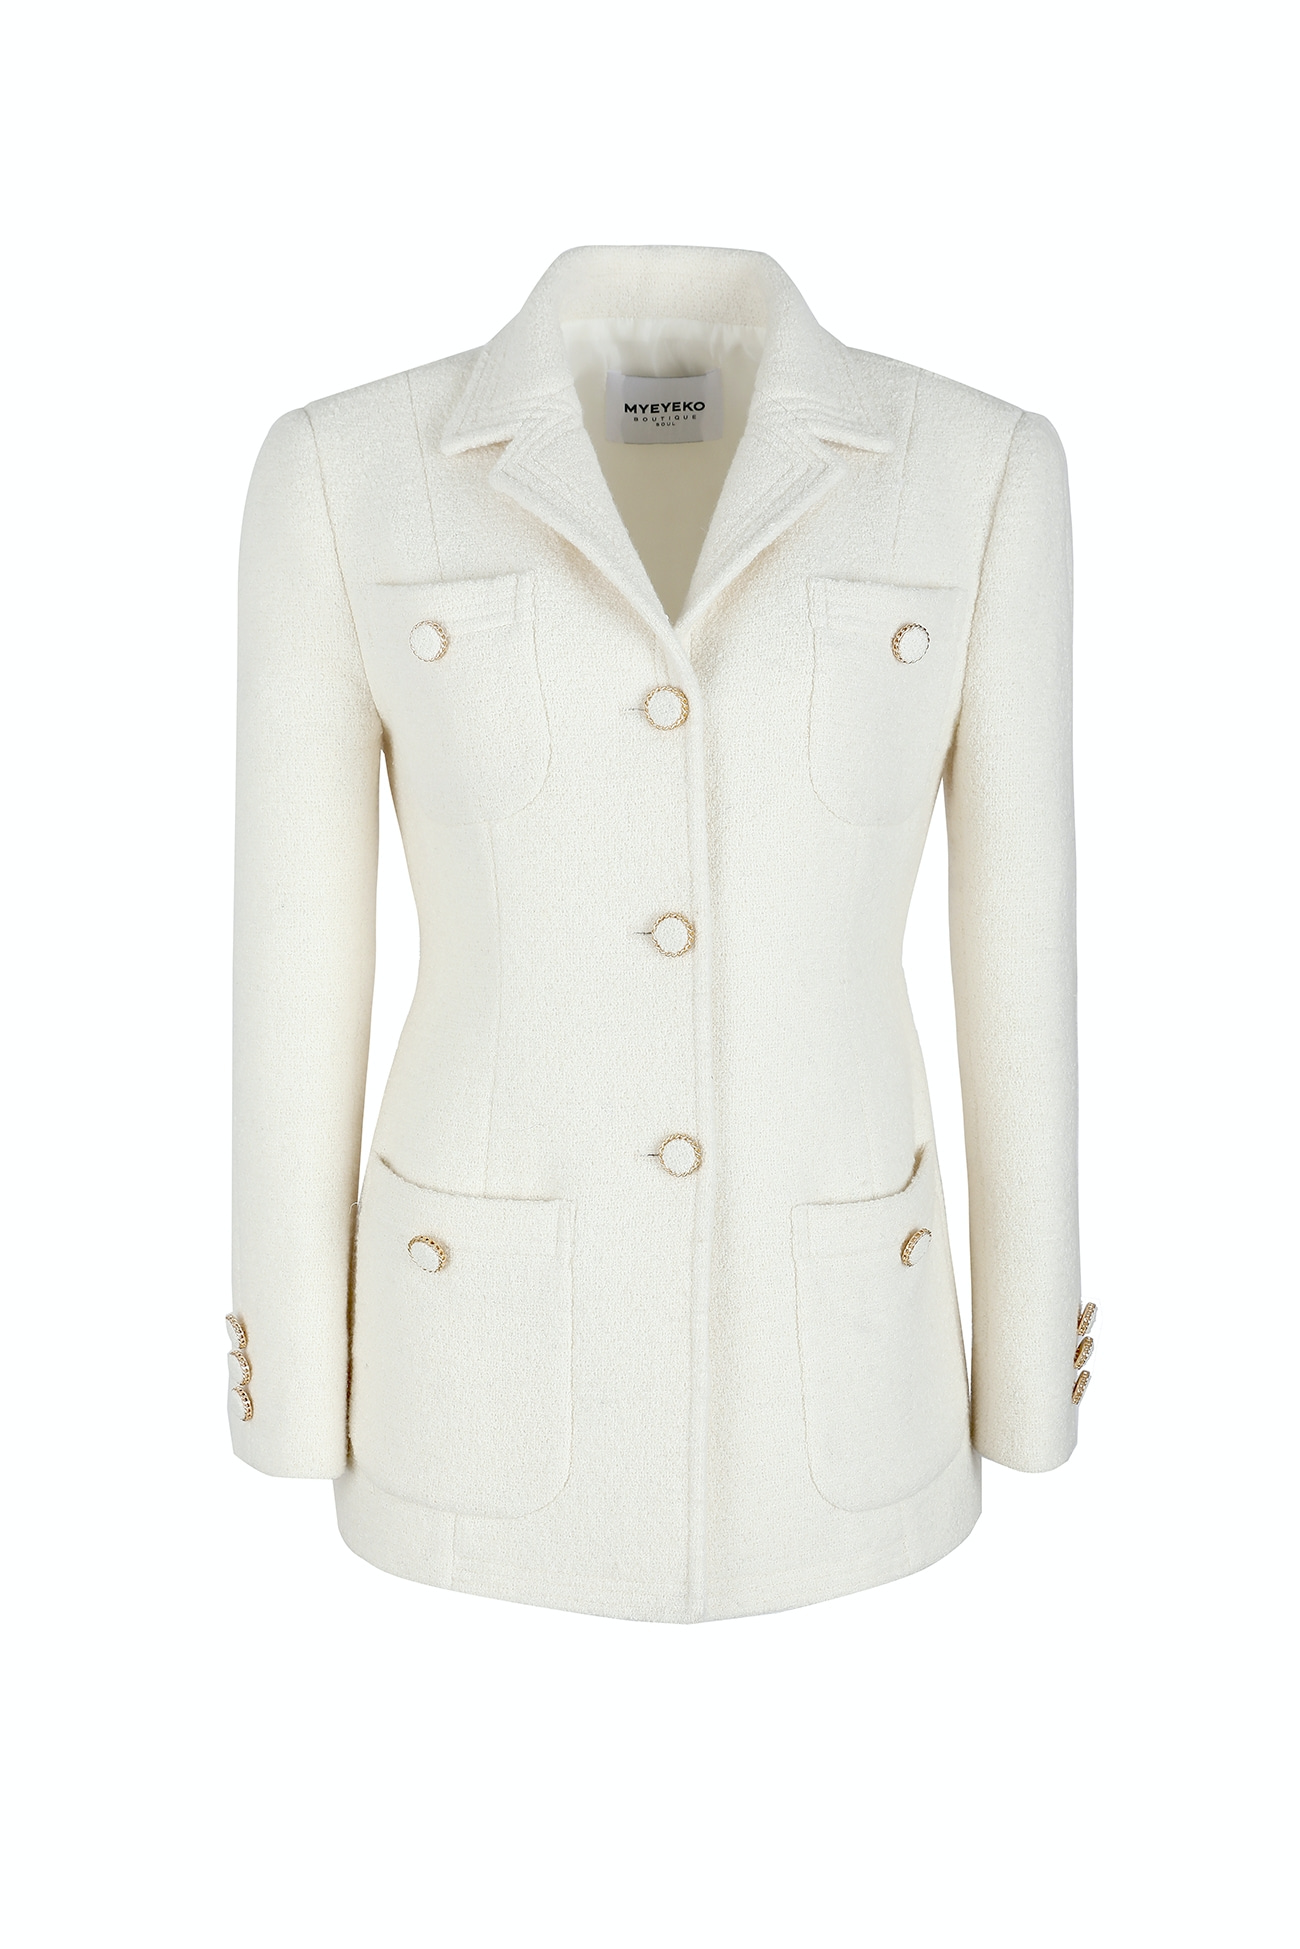 HIGH QUALITY LINE - IVORY Tweed Jacket (BY. japan fabric)